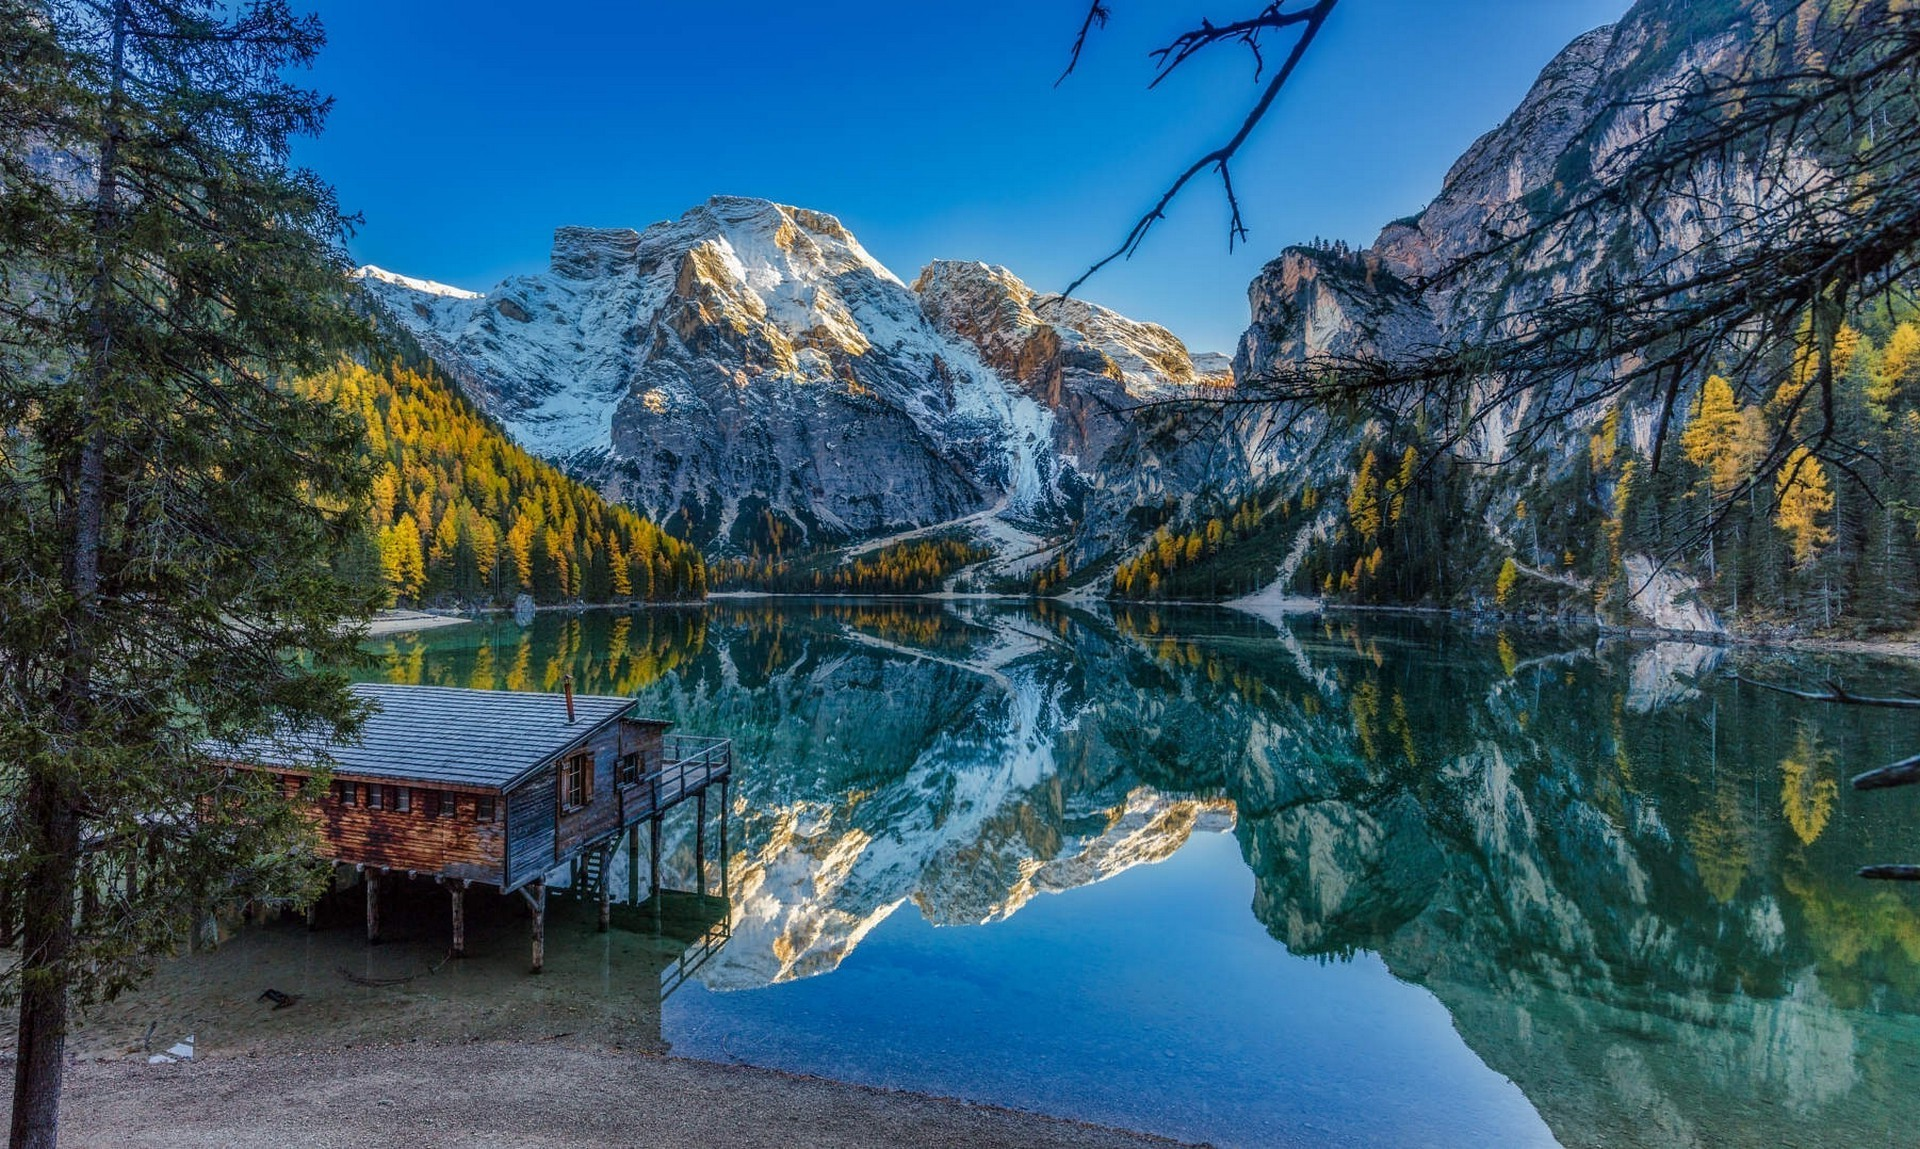 nature, Landscape, Lake, Fall, Mountains, Forest, Blue, Sky, Water, House,  Reflection, Alps, Italy Wallpapers HD / Desktop and Mobile Backgrounds